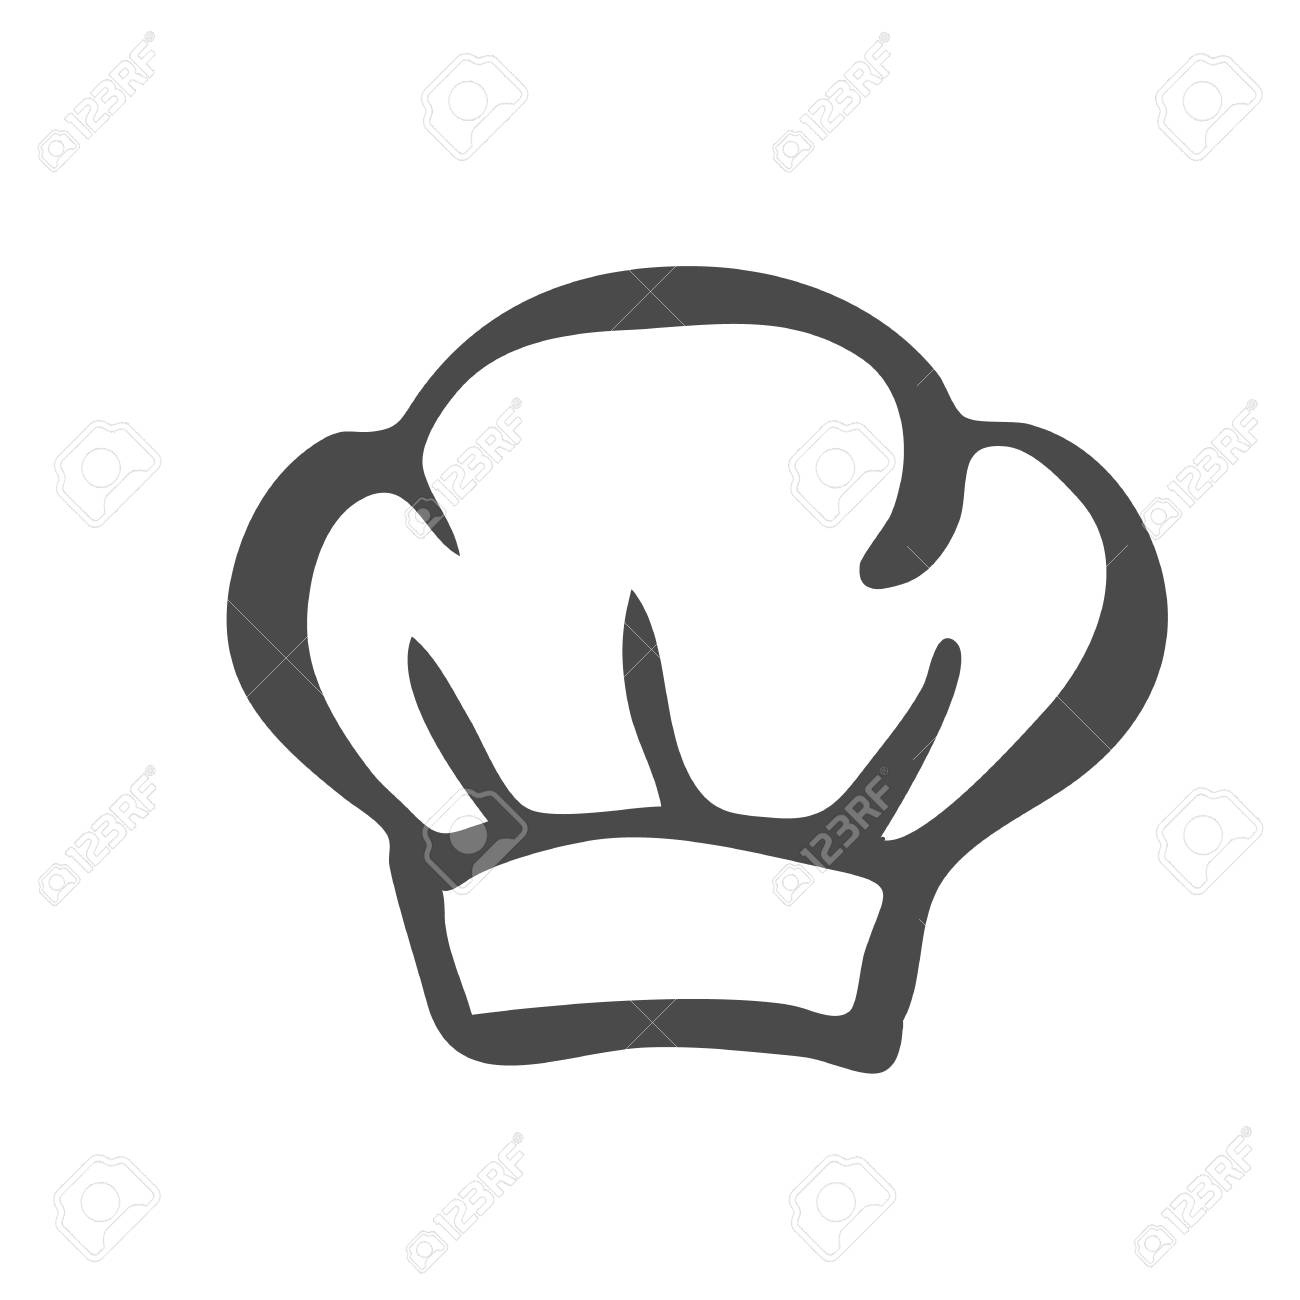 chef hat silhouette isolated black hat chef cook for logo royalty rh 123rf com Chef Cooking Clip Art Chef Hat Silhouette